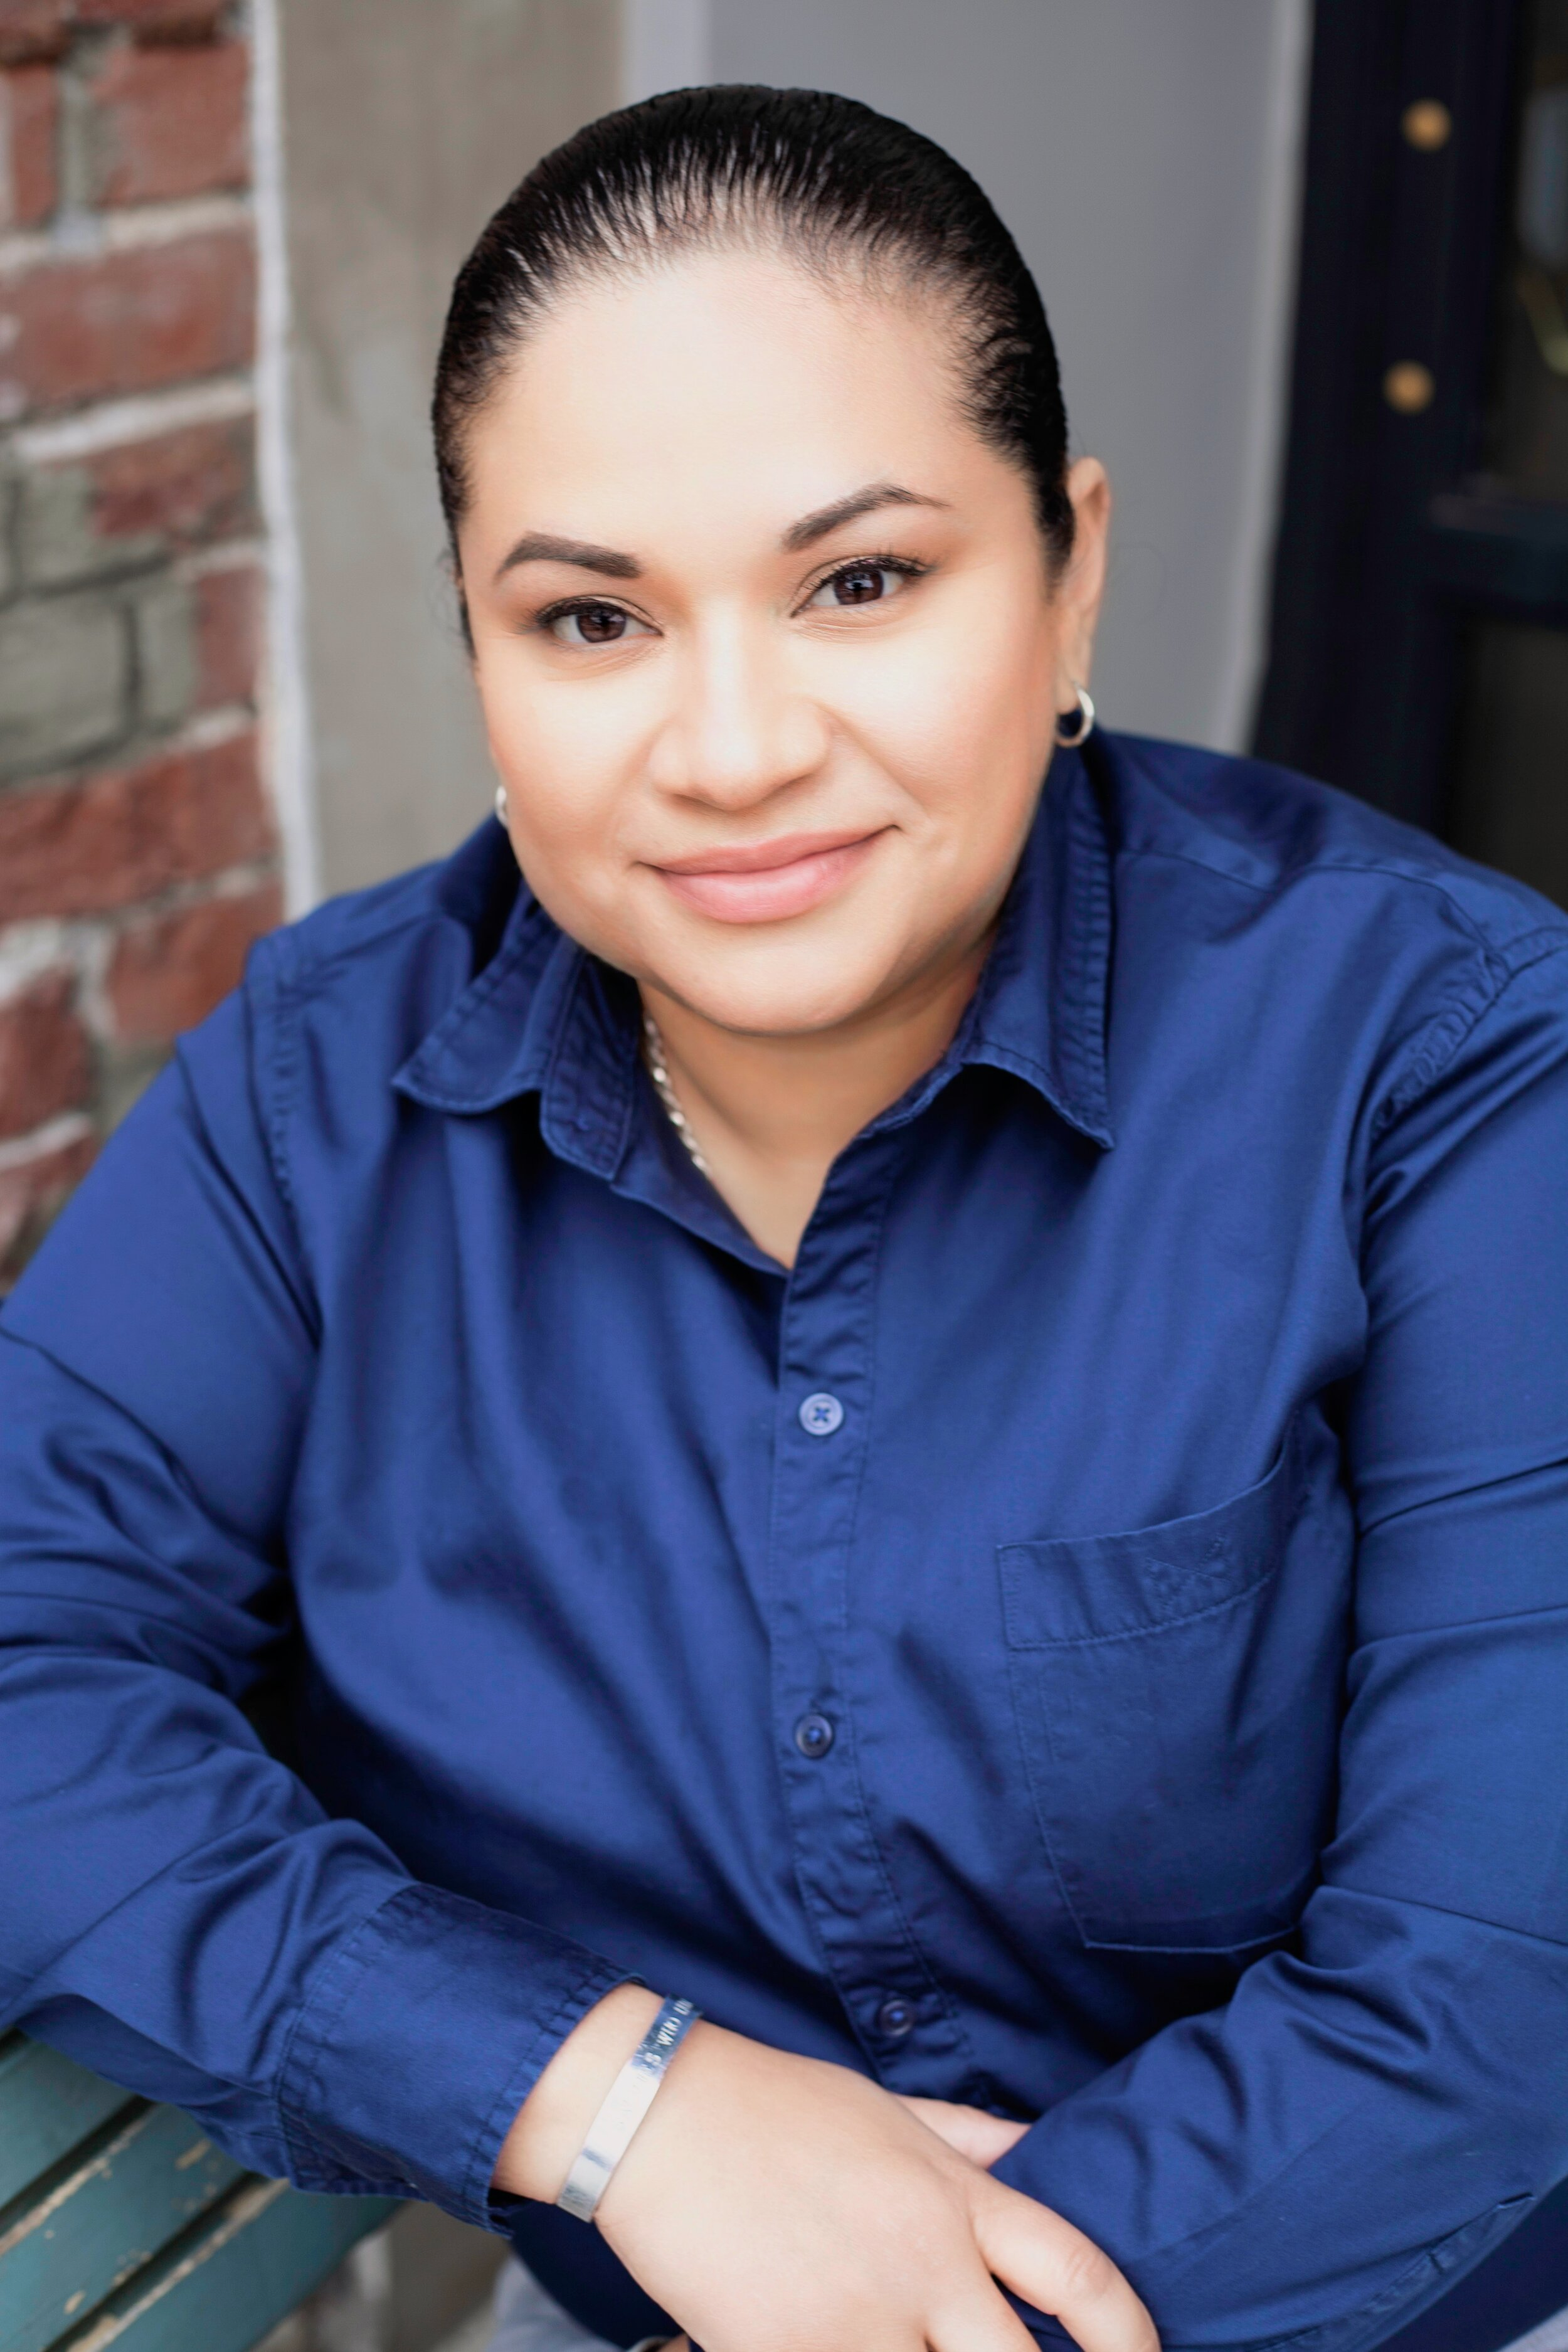 Cynthia Gonzalez founded Salvies Who Lunch to empower the Salvadoran community by highlighting positive role models while enjoying pupusas y chambres!